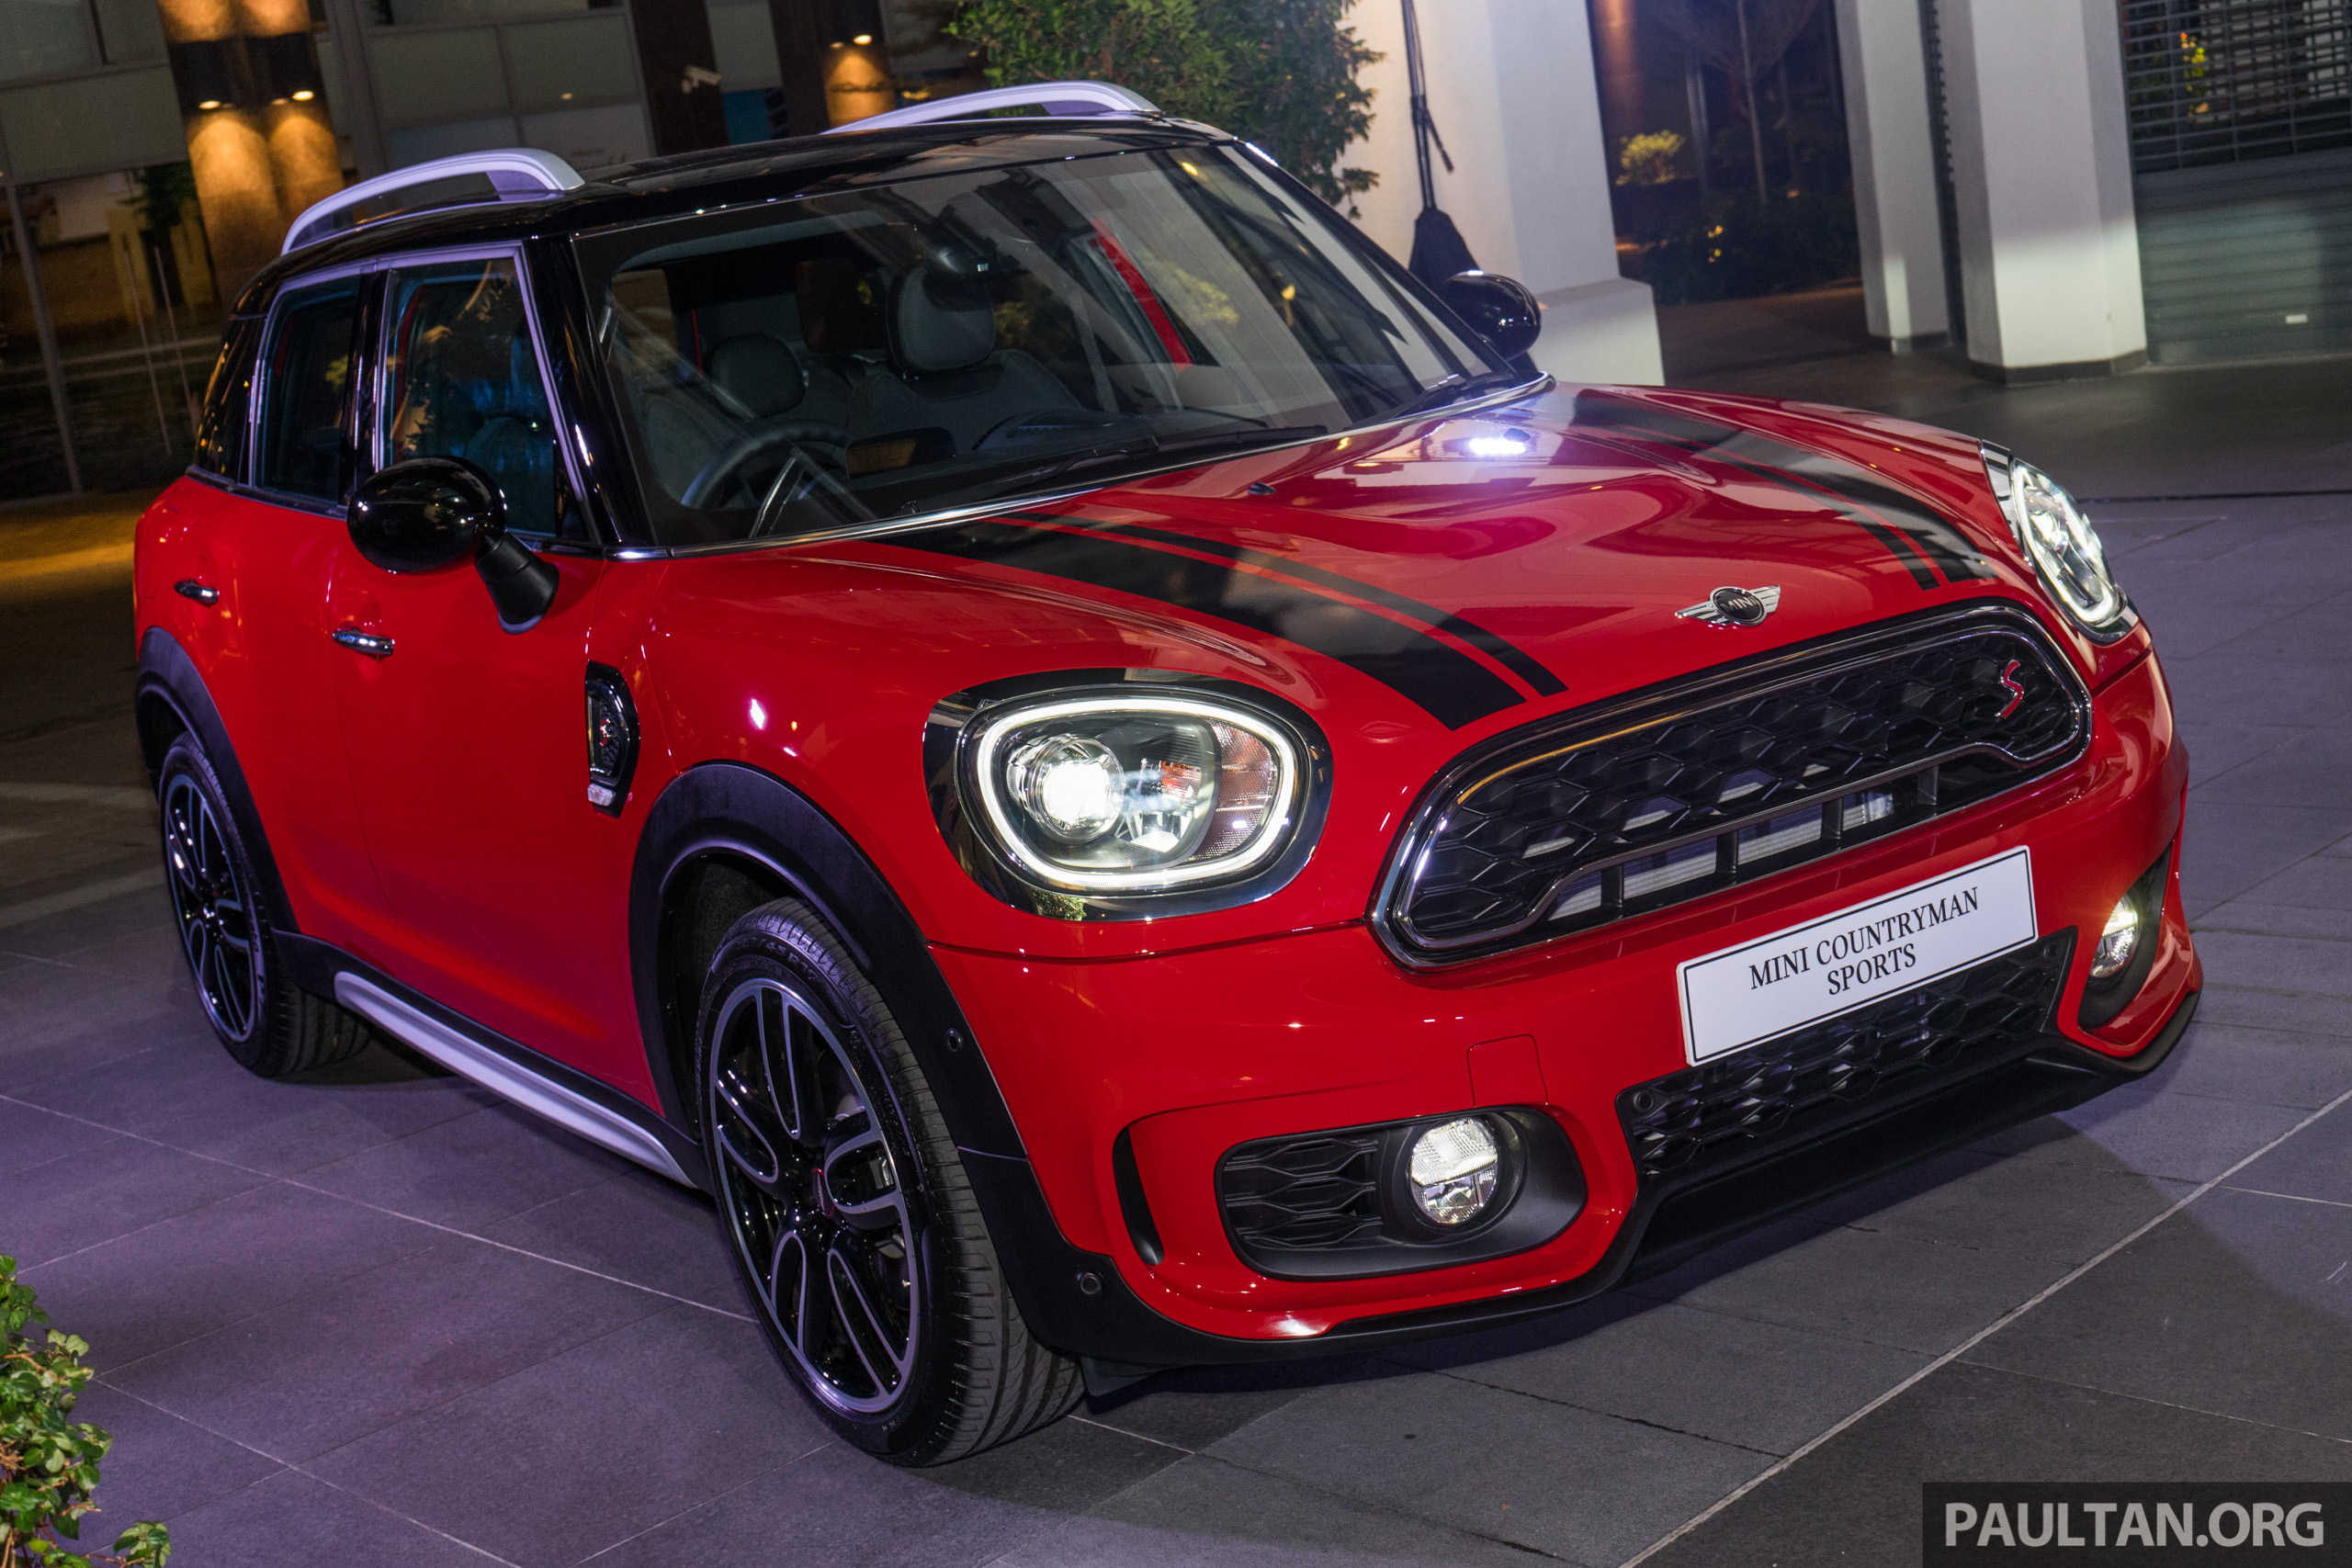 mini cooper s countryman sports launched ckd john. Black Bedroom Furniture Sets. Home Design Ideas